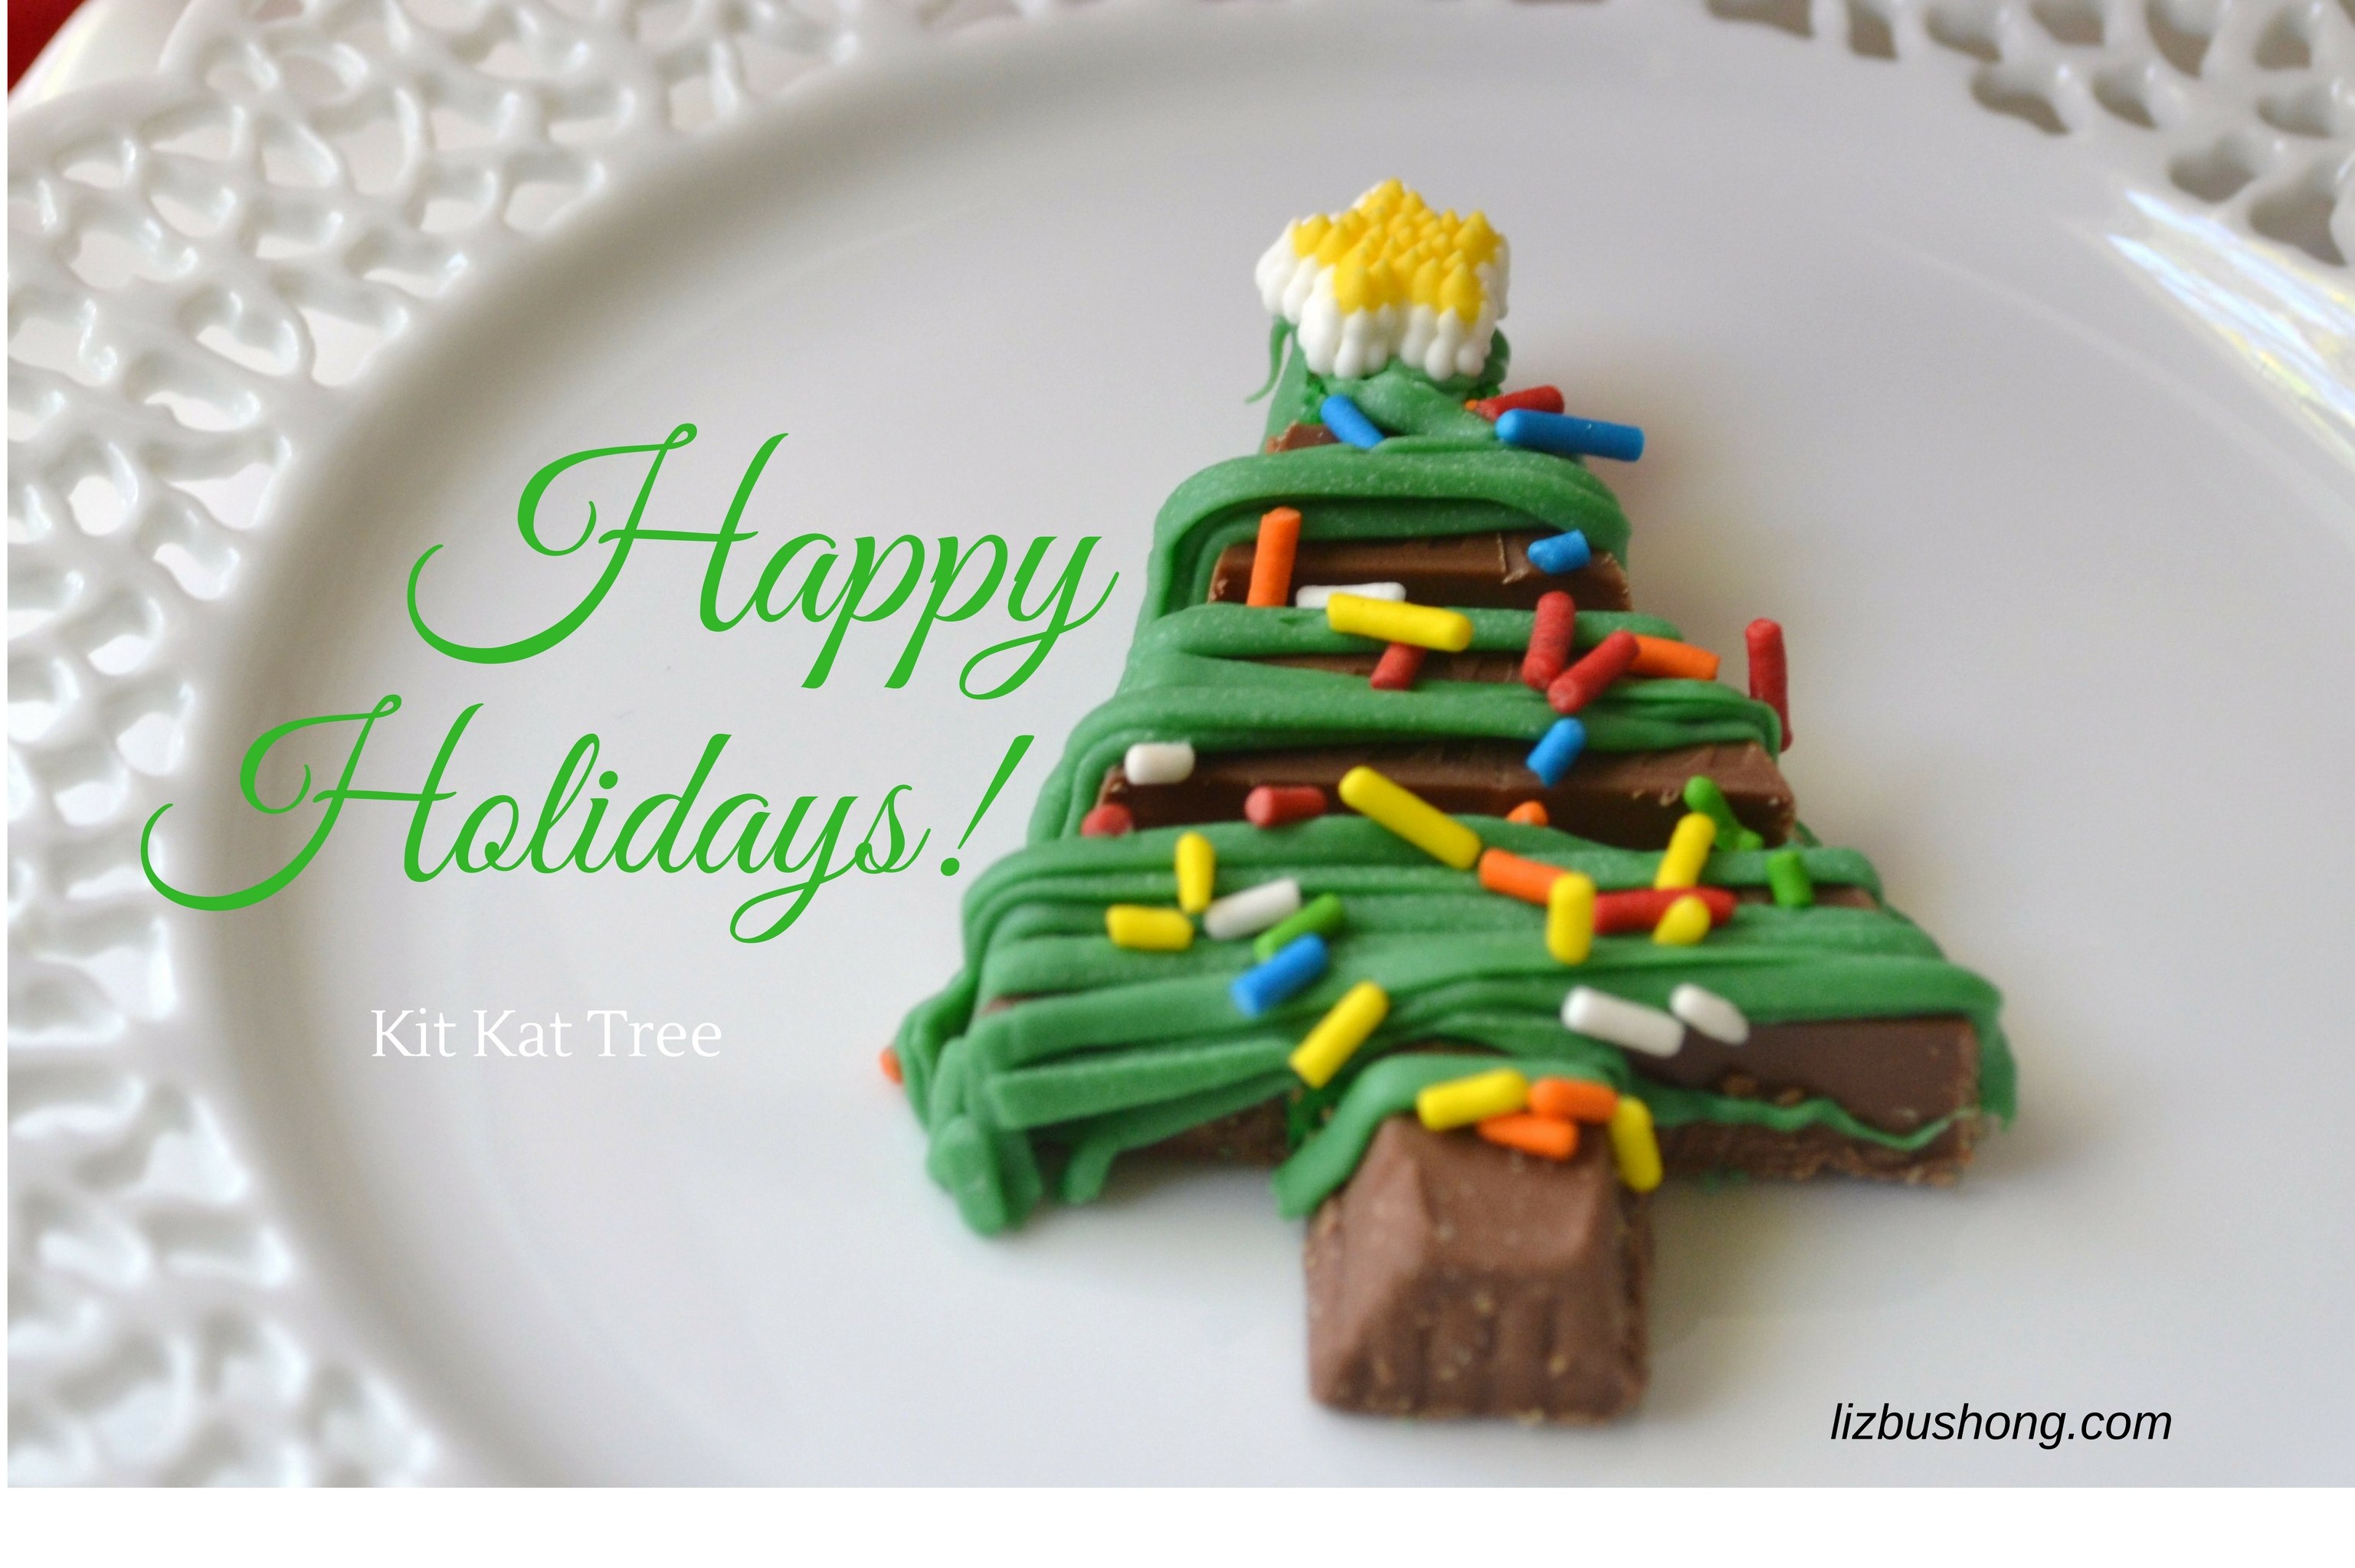 holidays-kit kat Christmas tree-www.lizbushong.com